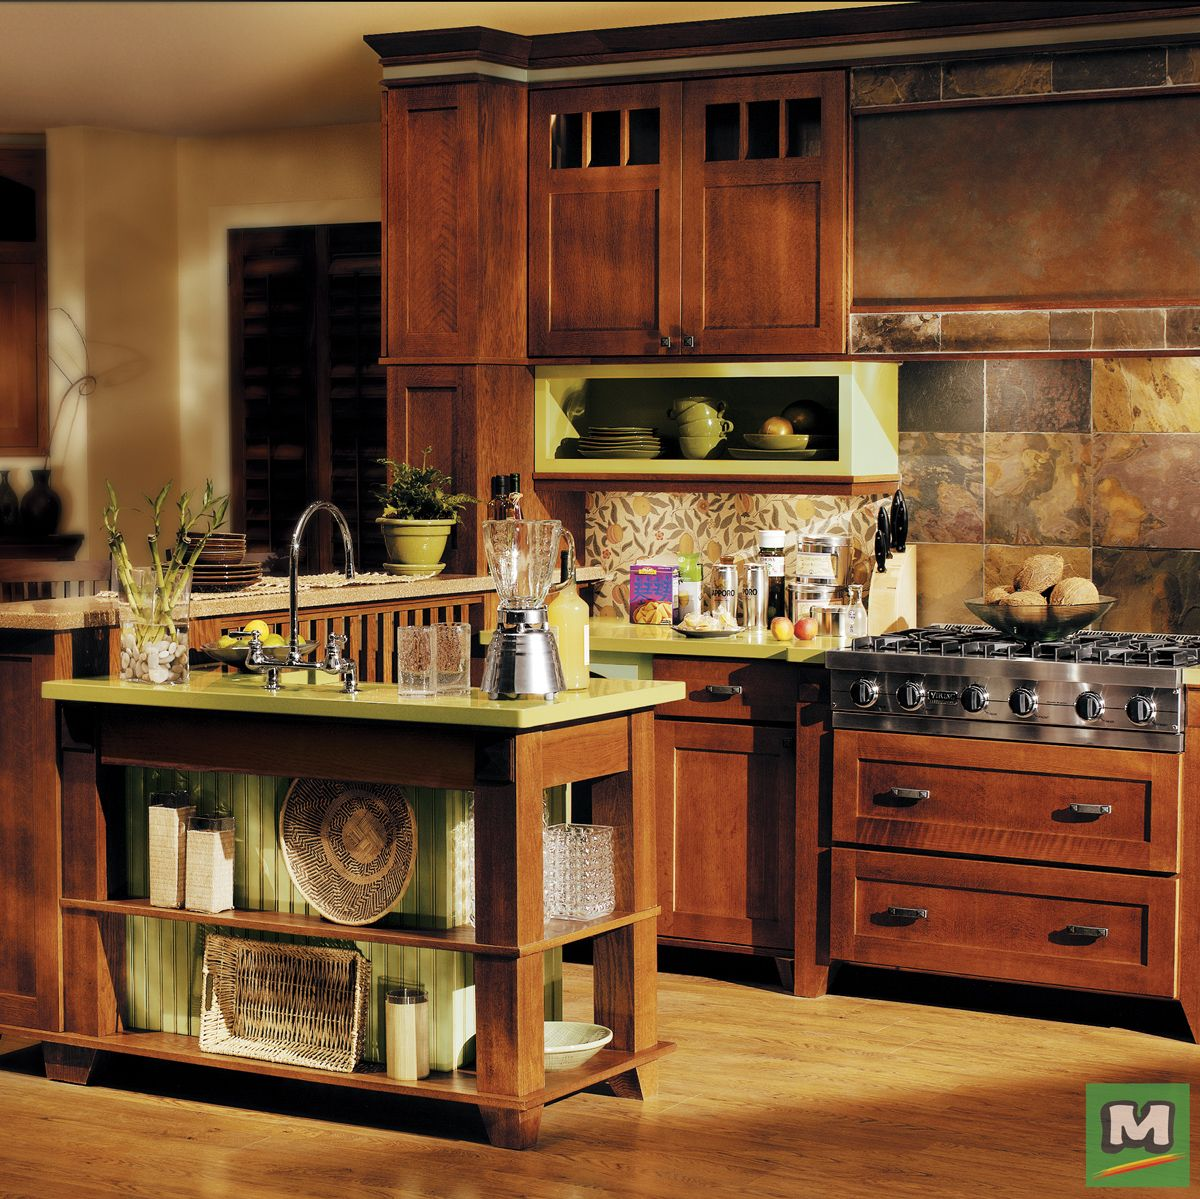 The Oak Park Quartersawn Oak In Chestnut Finish From Medallion Cabinetry Will Make Your Kitchen A Warm Welcoming Space Tha Menards Cabinets Cabinetry Kitchen